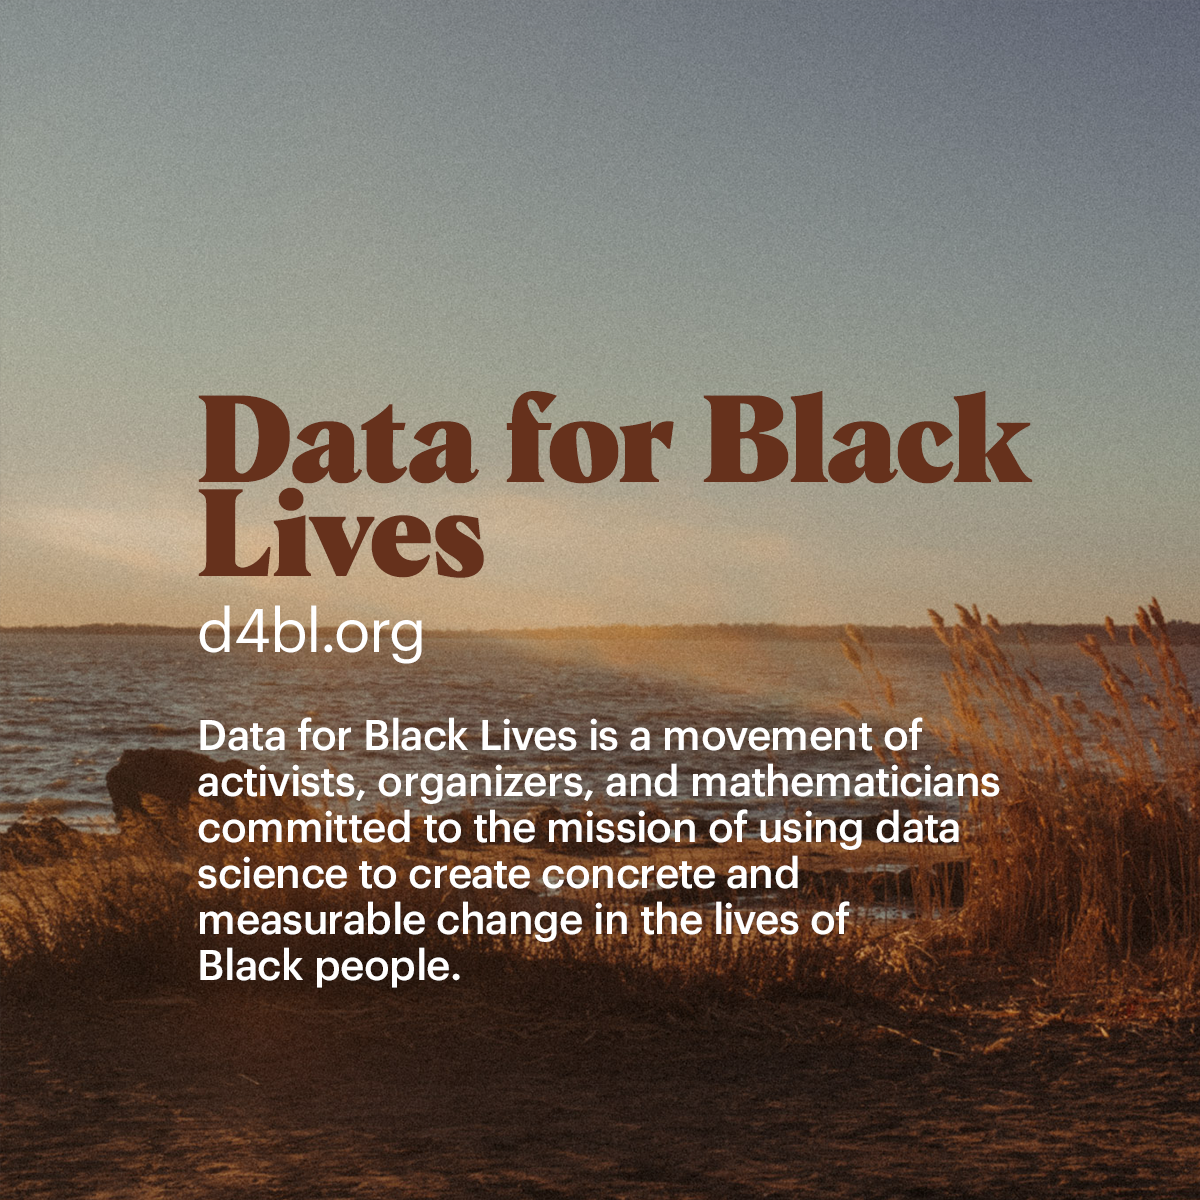 Data for Black Lives Data for Black Lives is a movement of  activists, organizers, and mathematicians  committed to the mission of using data  science to create concrete and  measurable change in the lives of  Black people.